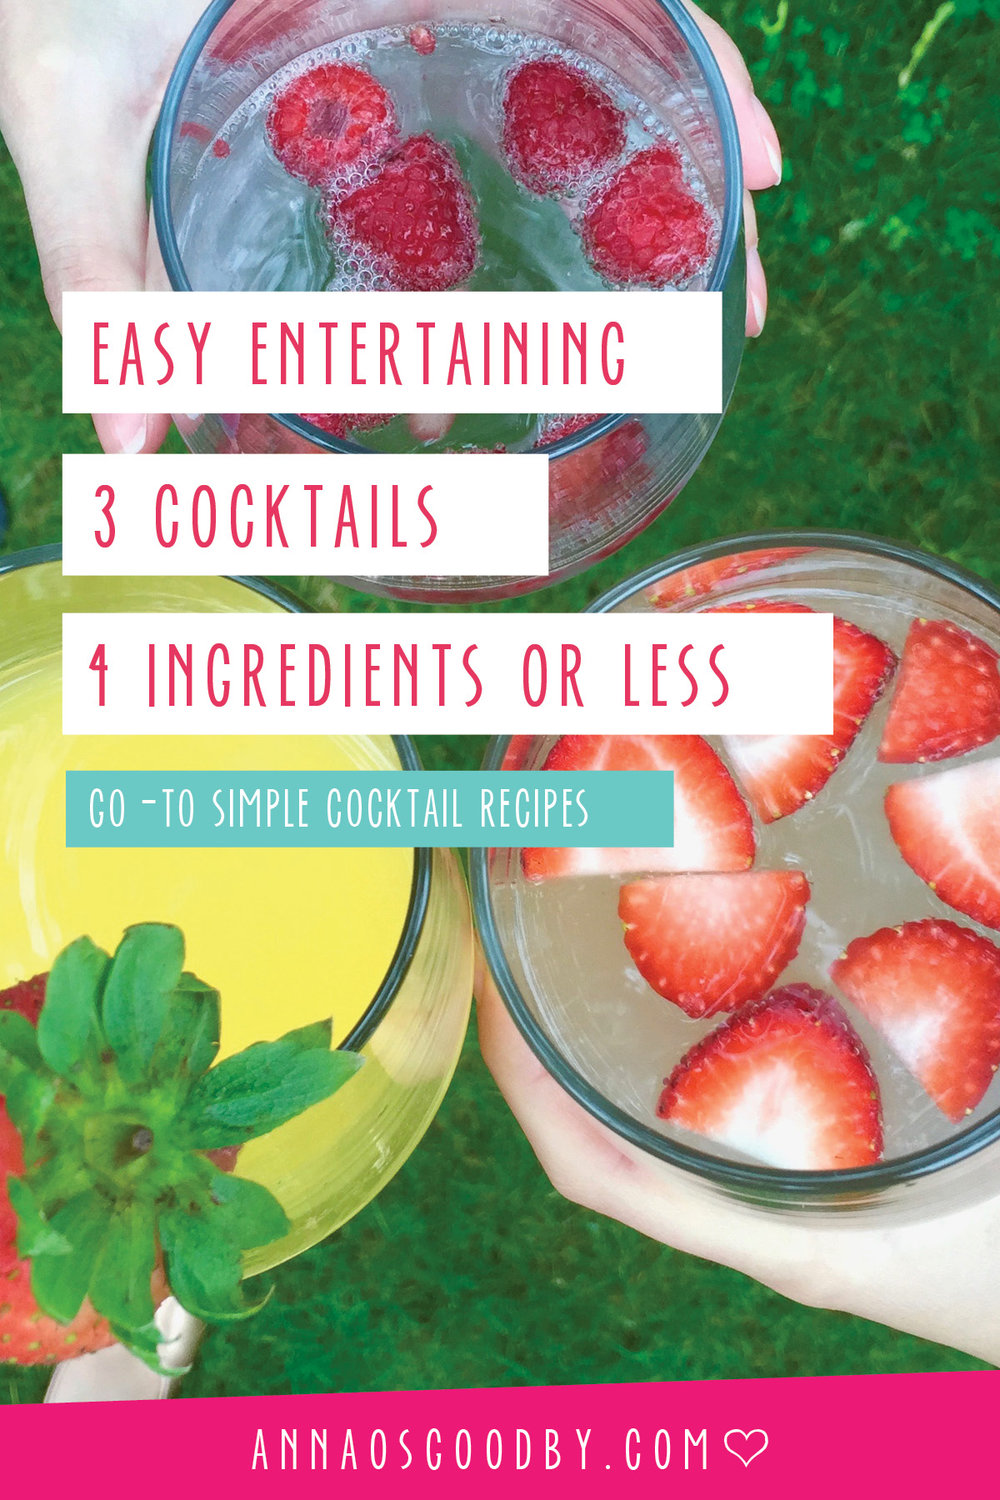 Anna Osgoodby Life & Design : Easy Entertaining 3 Simple Cocktail Recipes